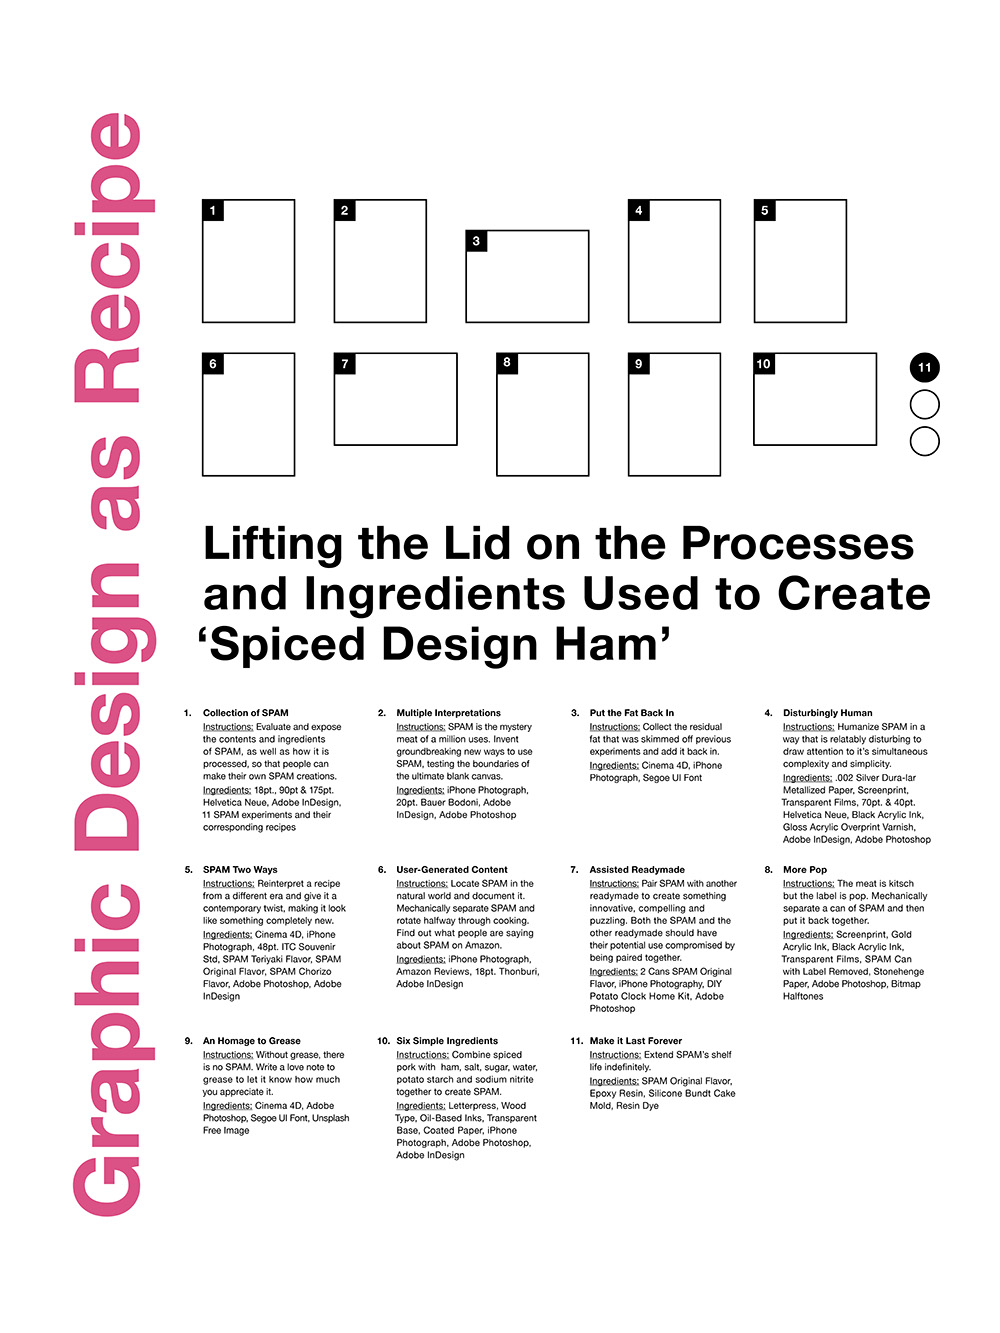 Graphic Design as Recipe